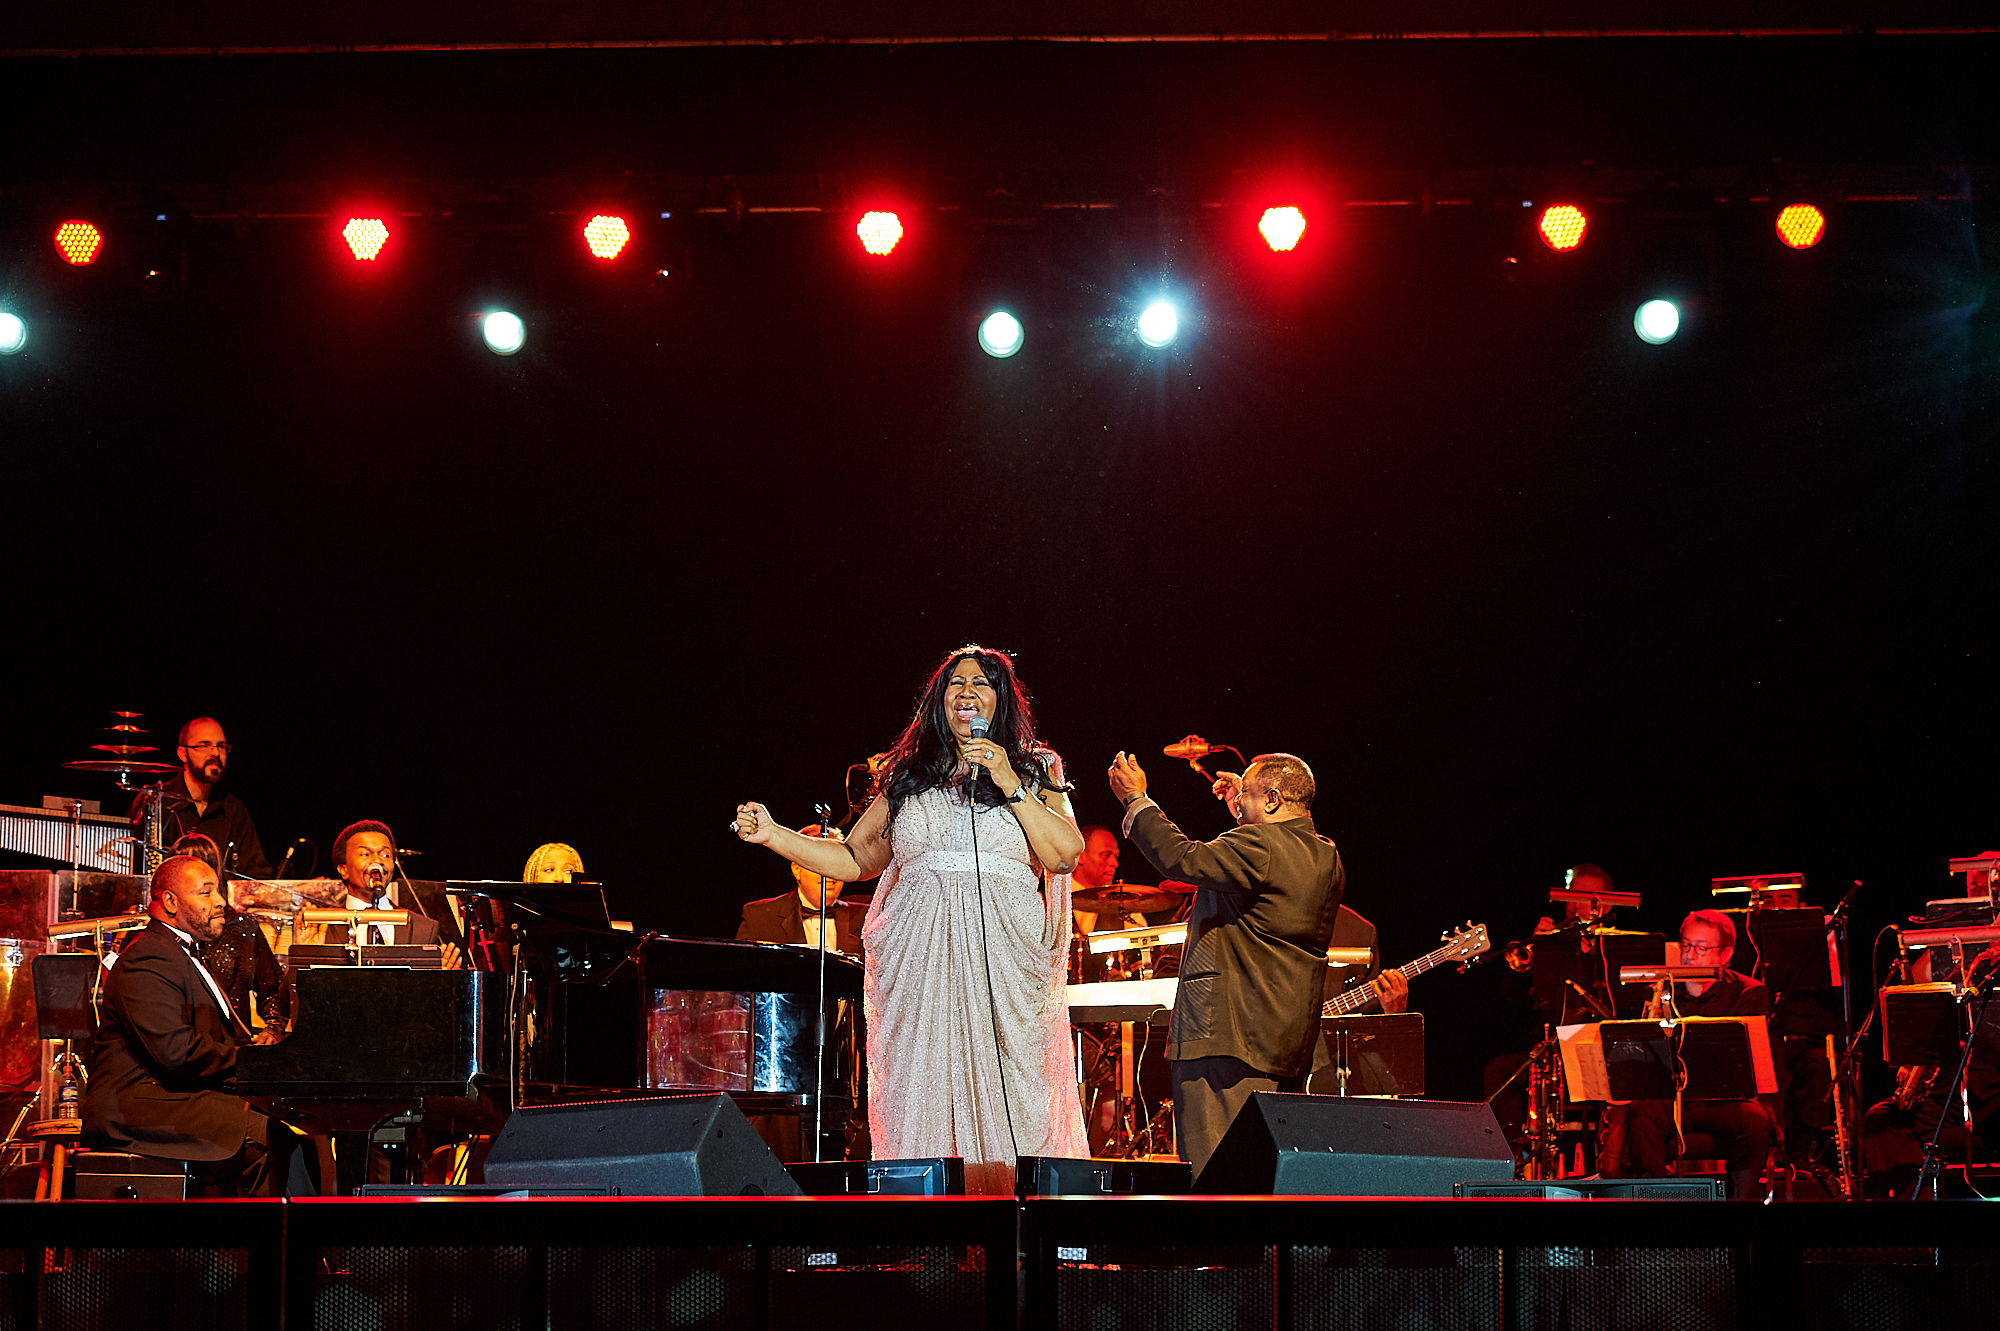 Aretha Franklin performs in the Sanford Field House as part of the Kerschner Family Series Global Leaders at Colgate University.